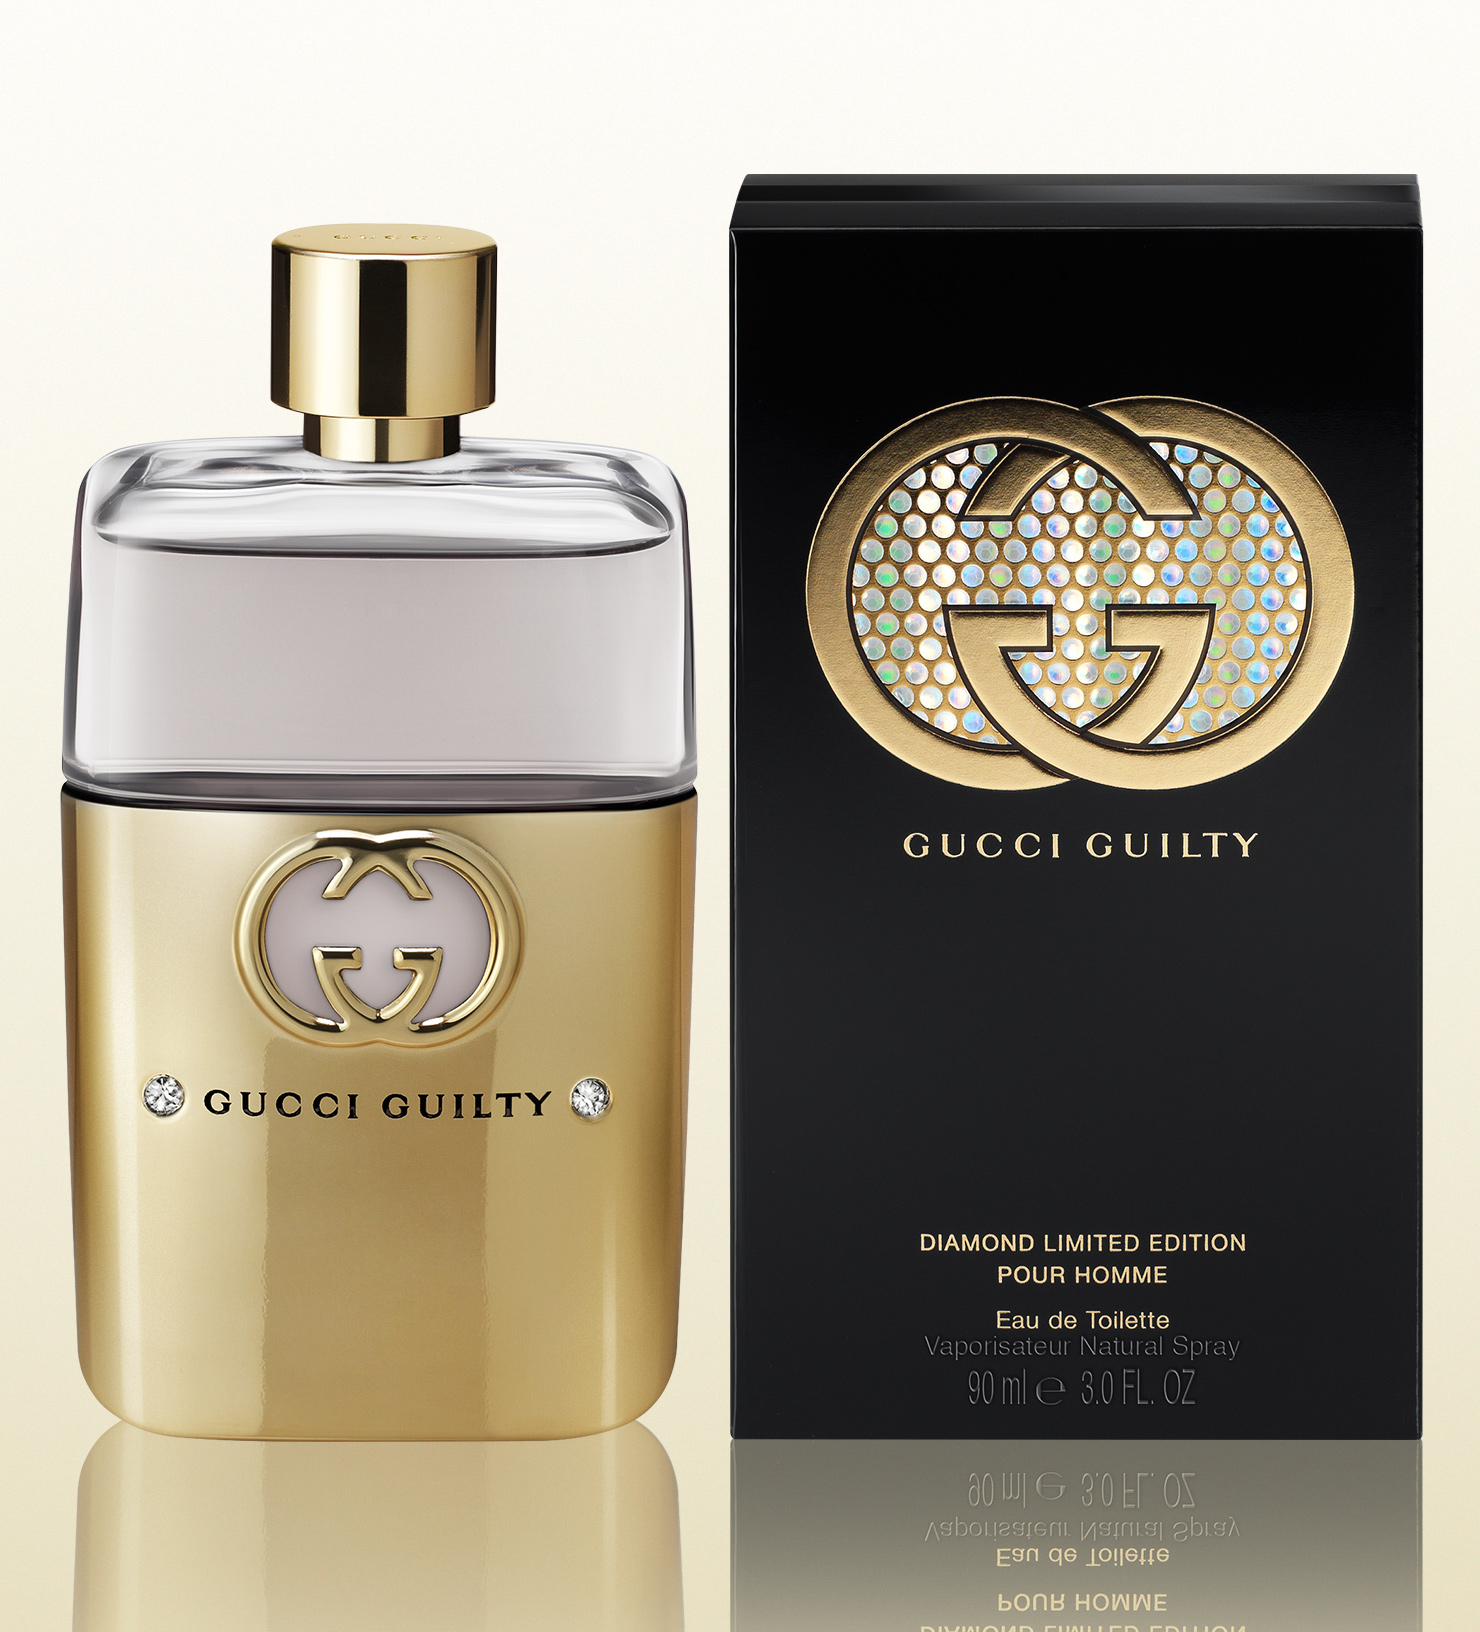 Gucci Guilty Diamond Limited Edition Pour Homme Eau de Toilette 90ml